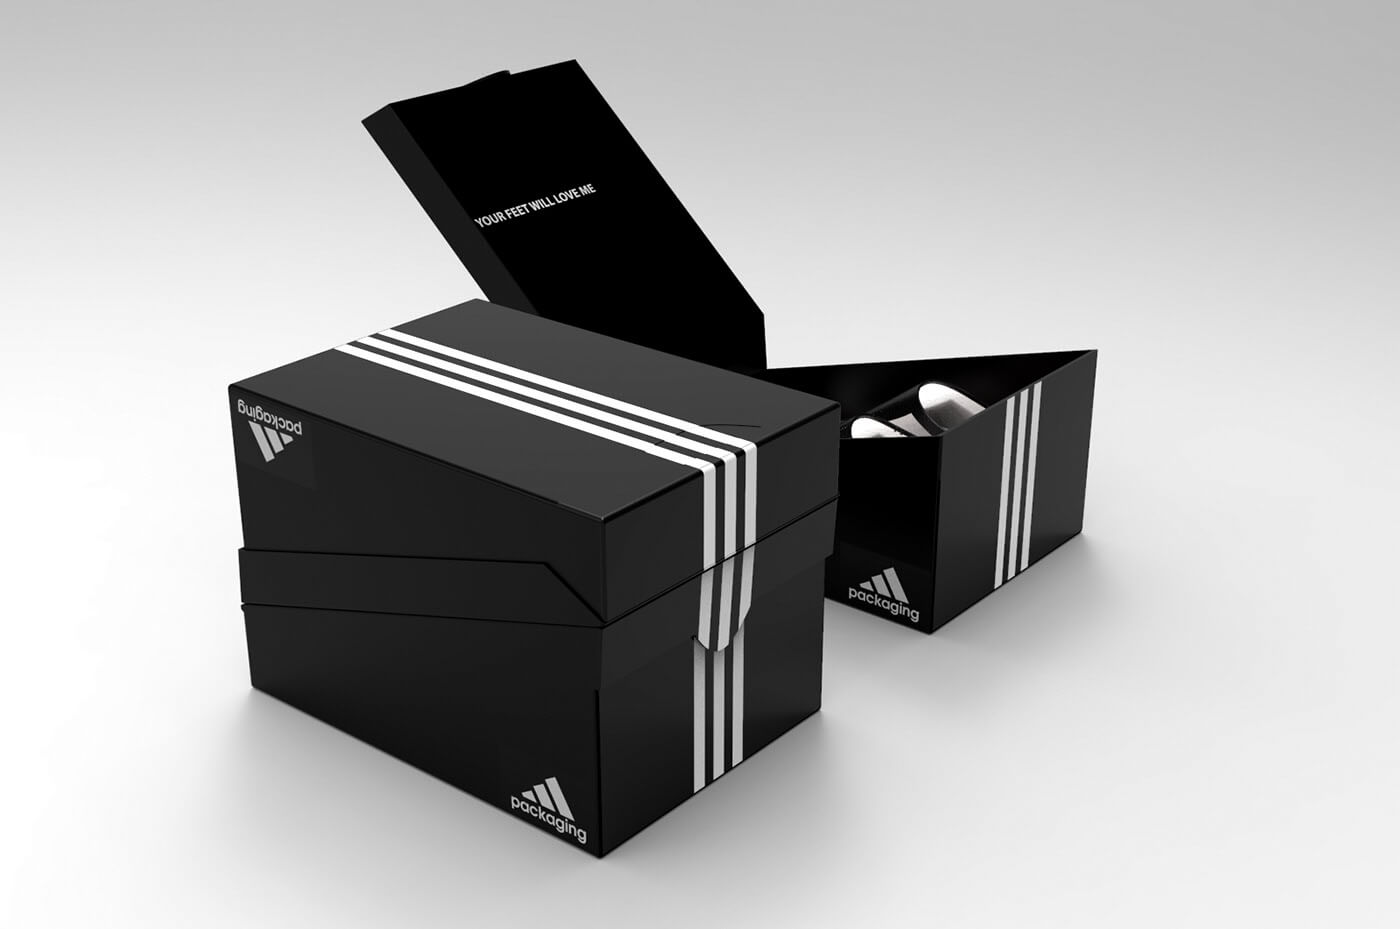 three black concept adidas shoe boxes, one open and two stacked on top of one another